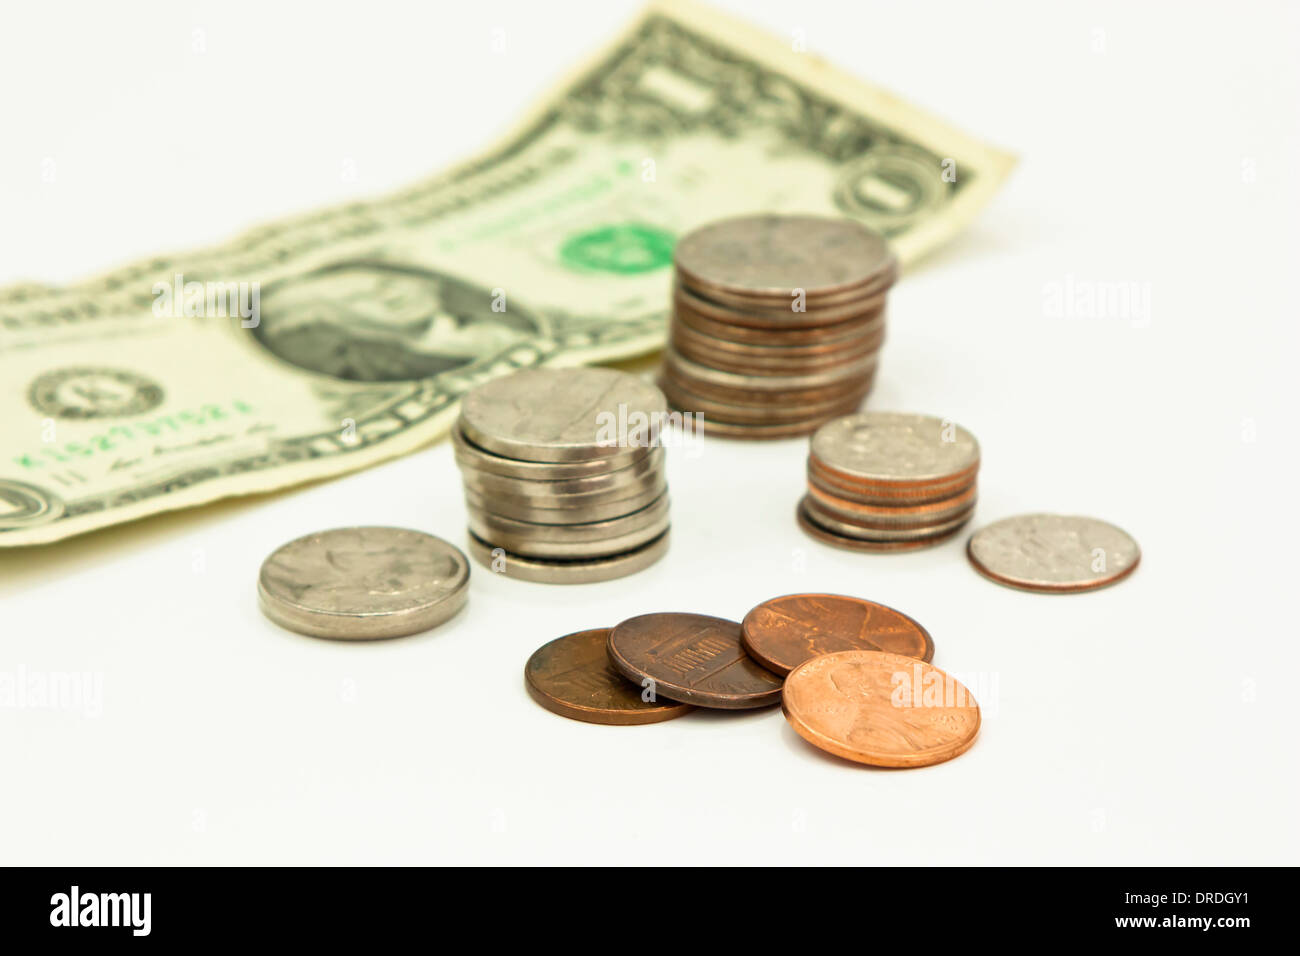 Nickels, dimes, quarters, pennies, dollar bill, US currency. - Stock Image